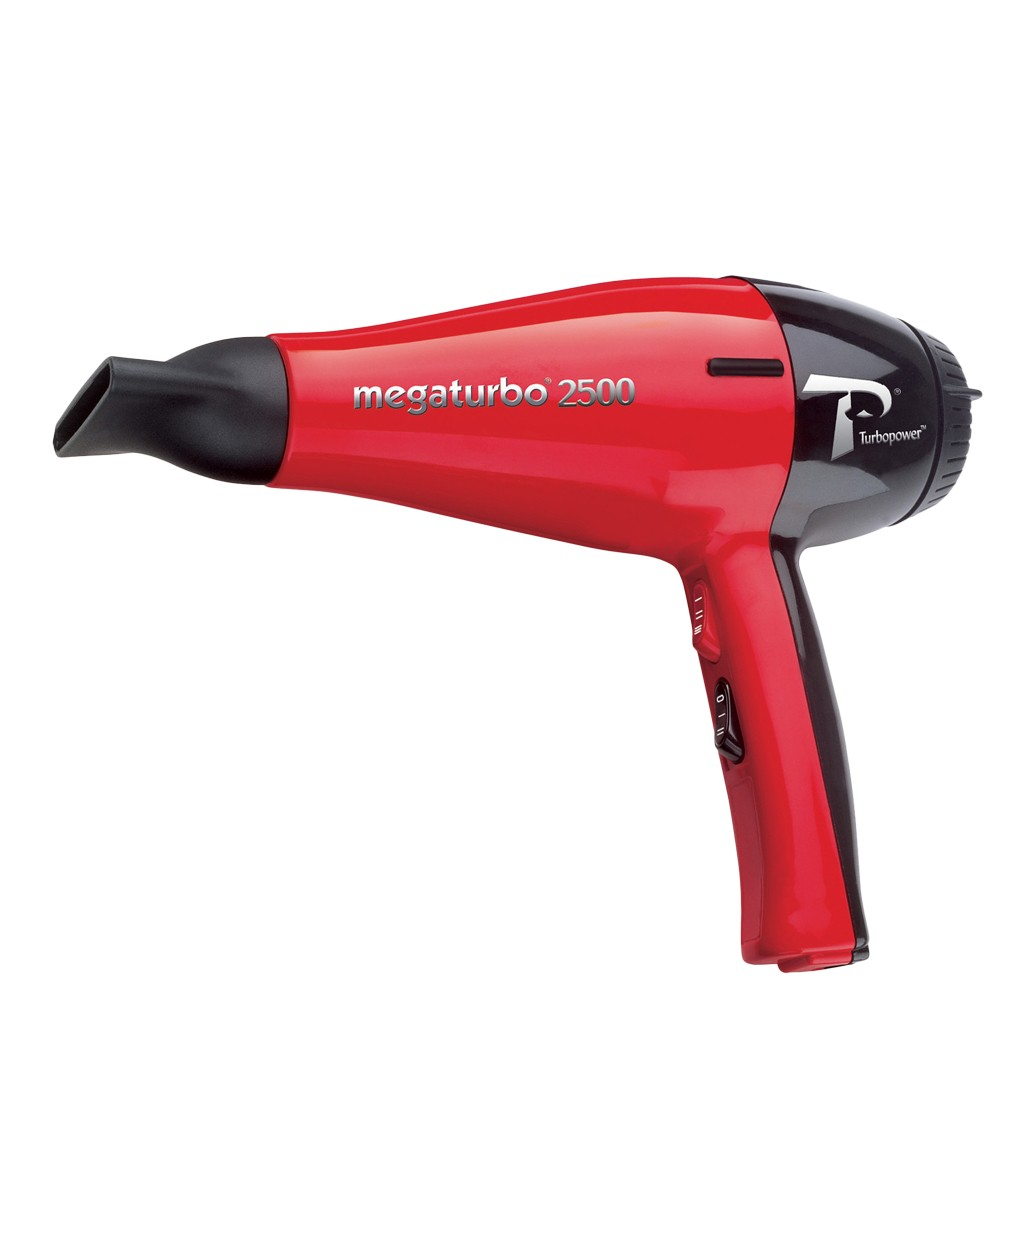 Turbo Power Twin Turbo 2500 Professional Hair Dryer